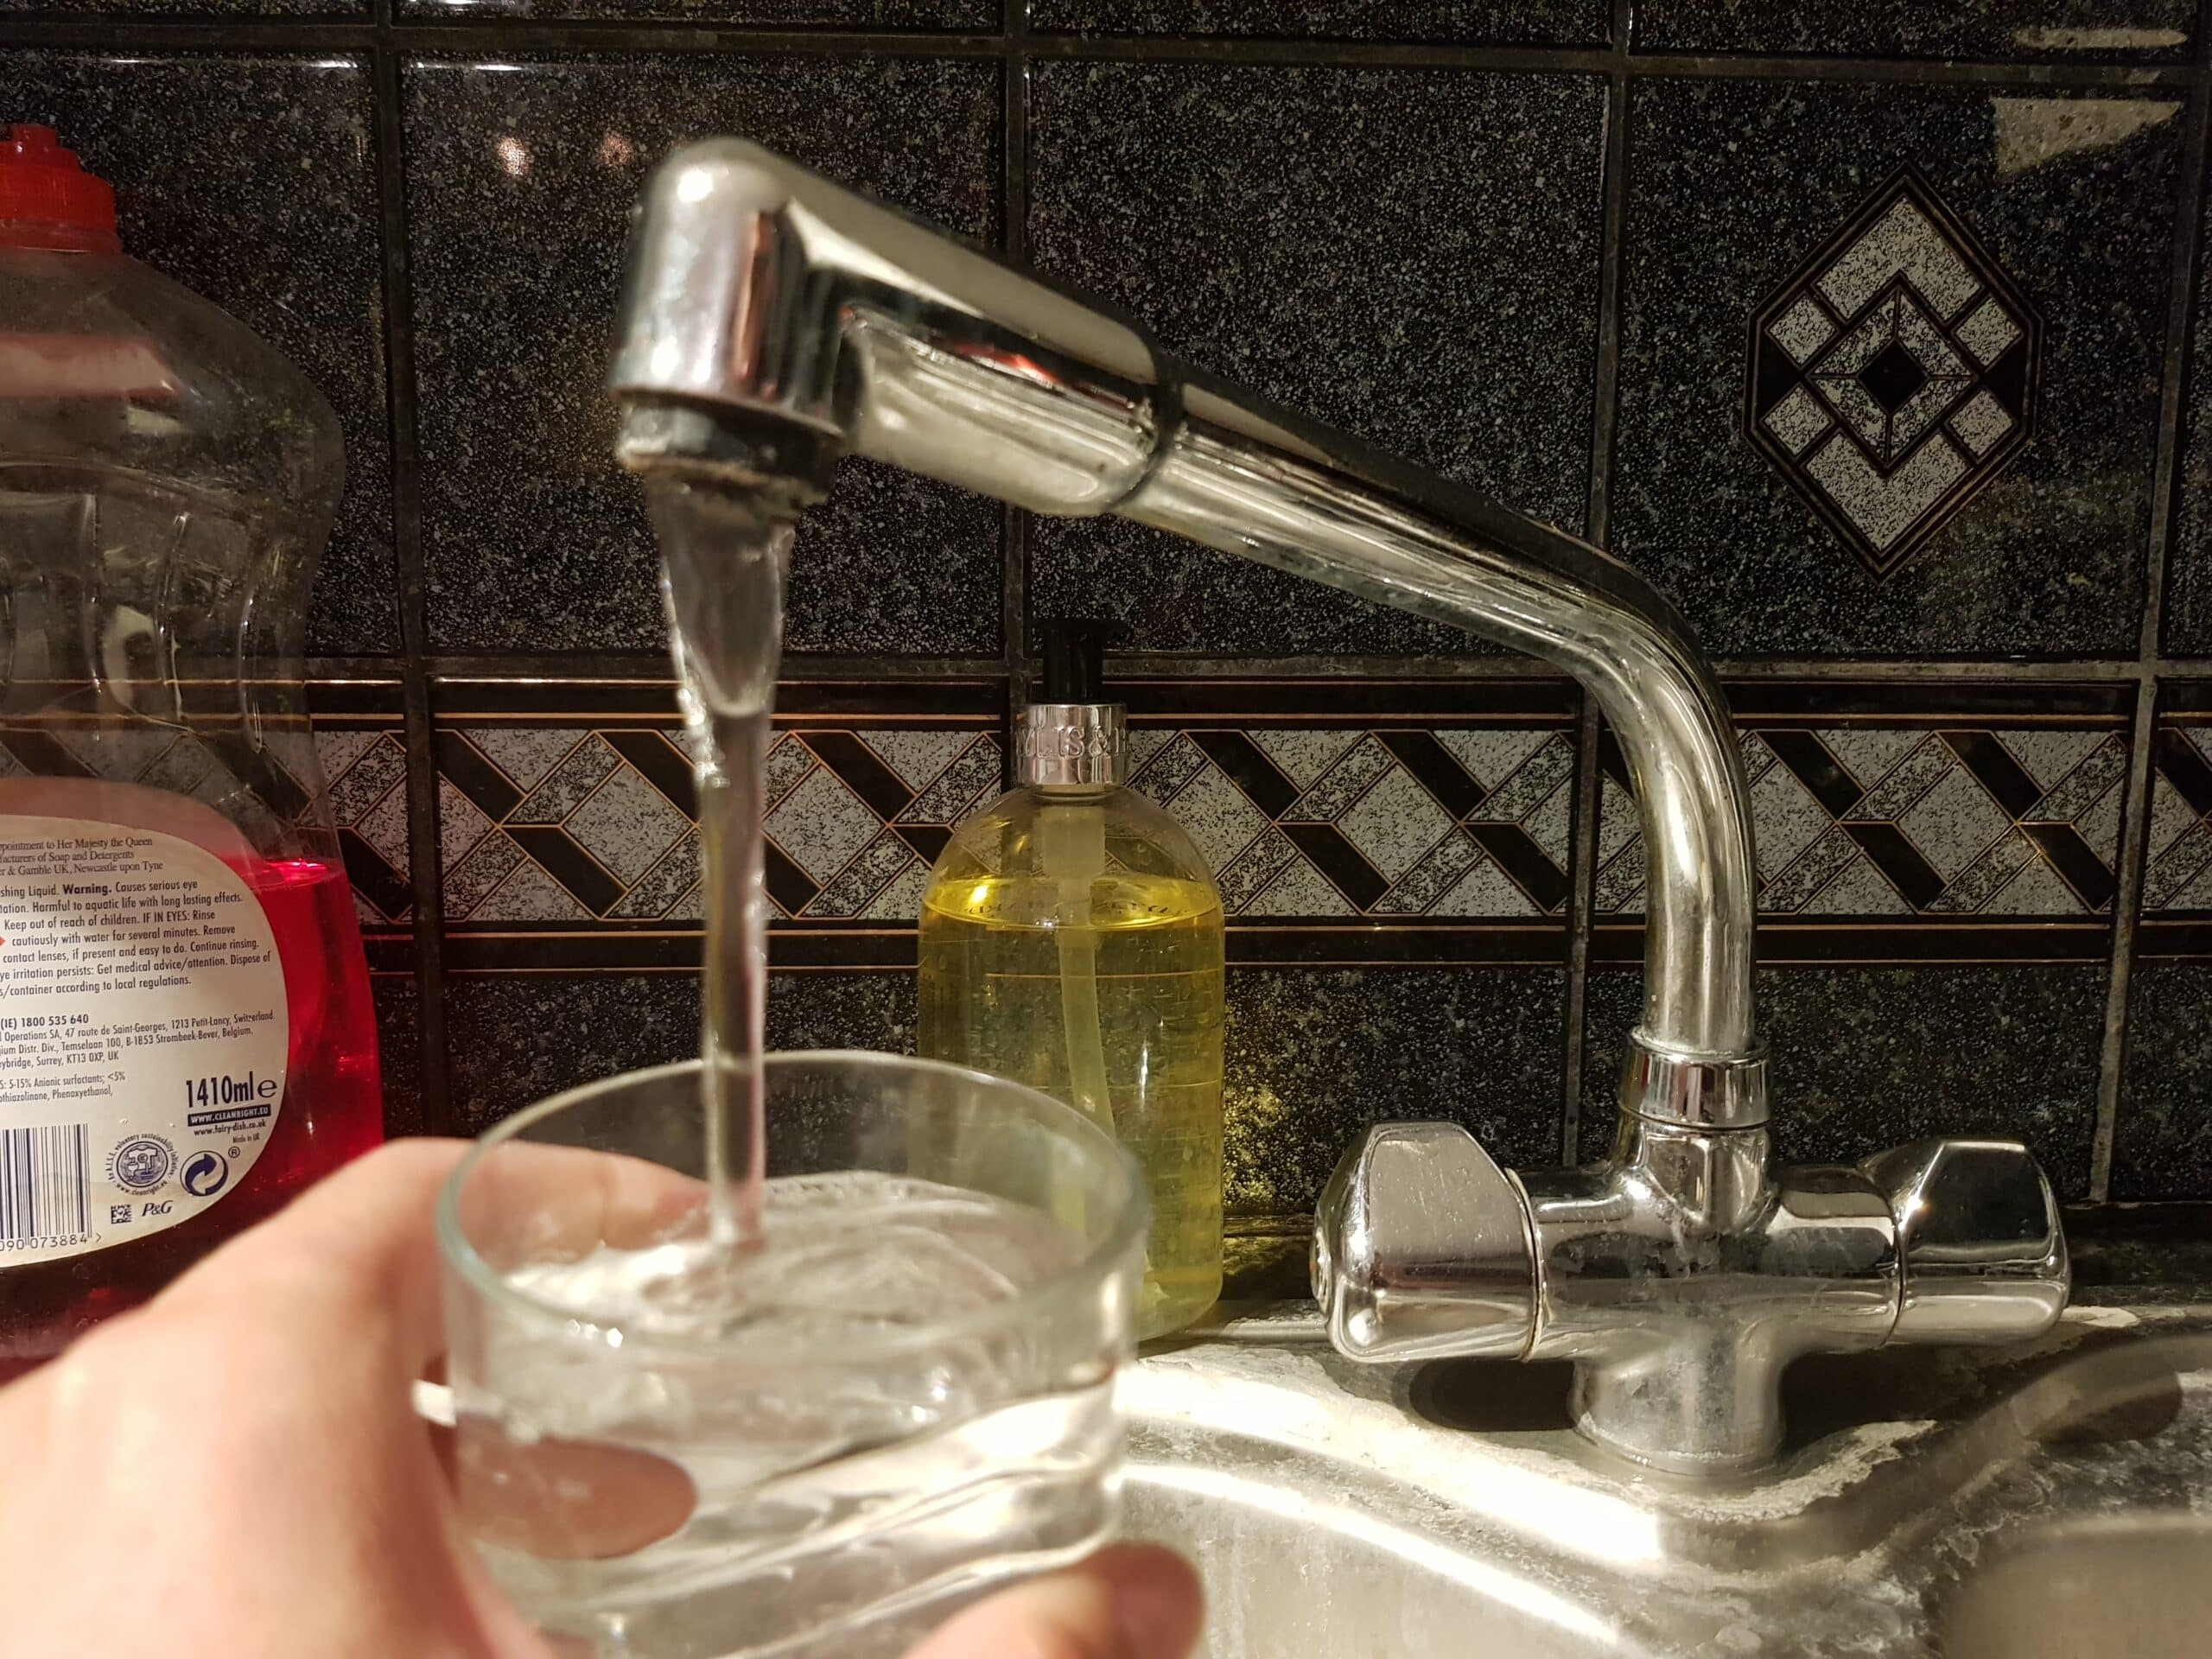 Water falling form the tap